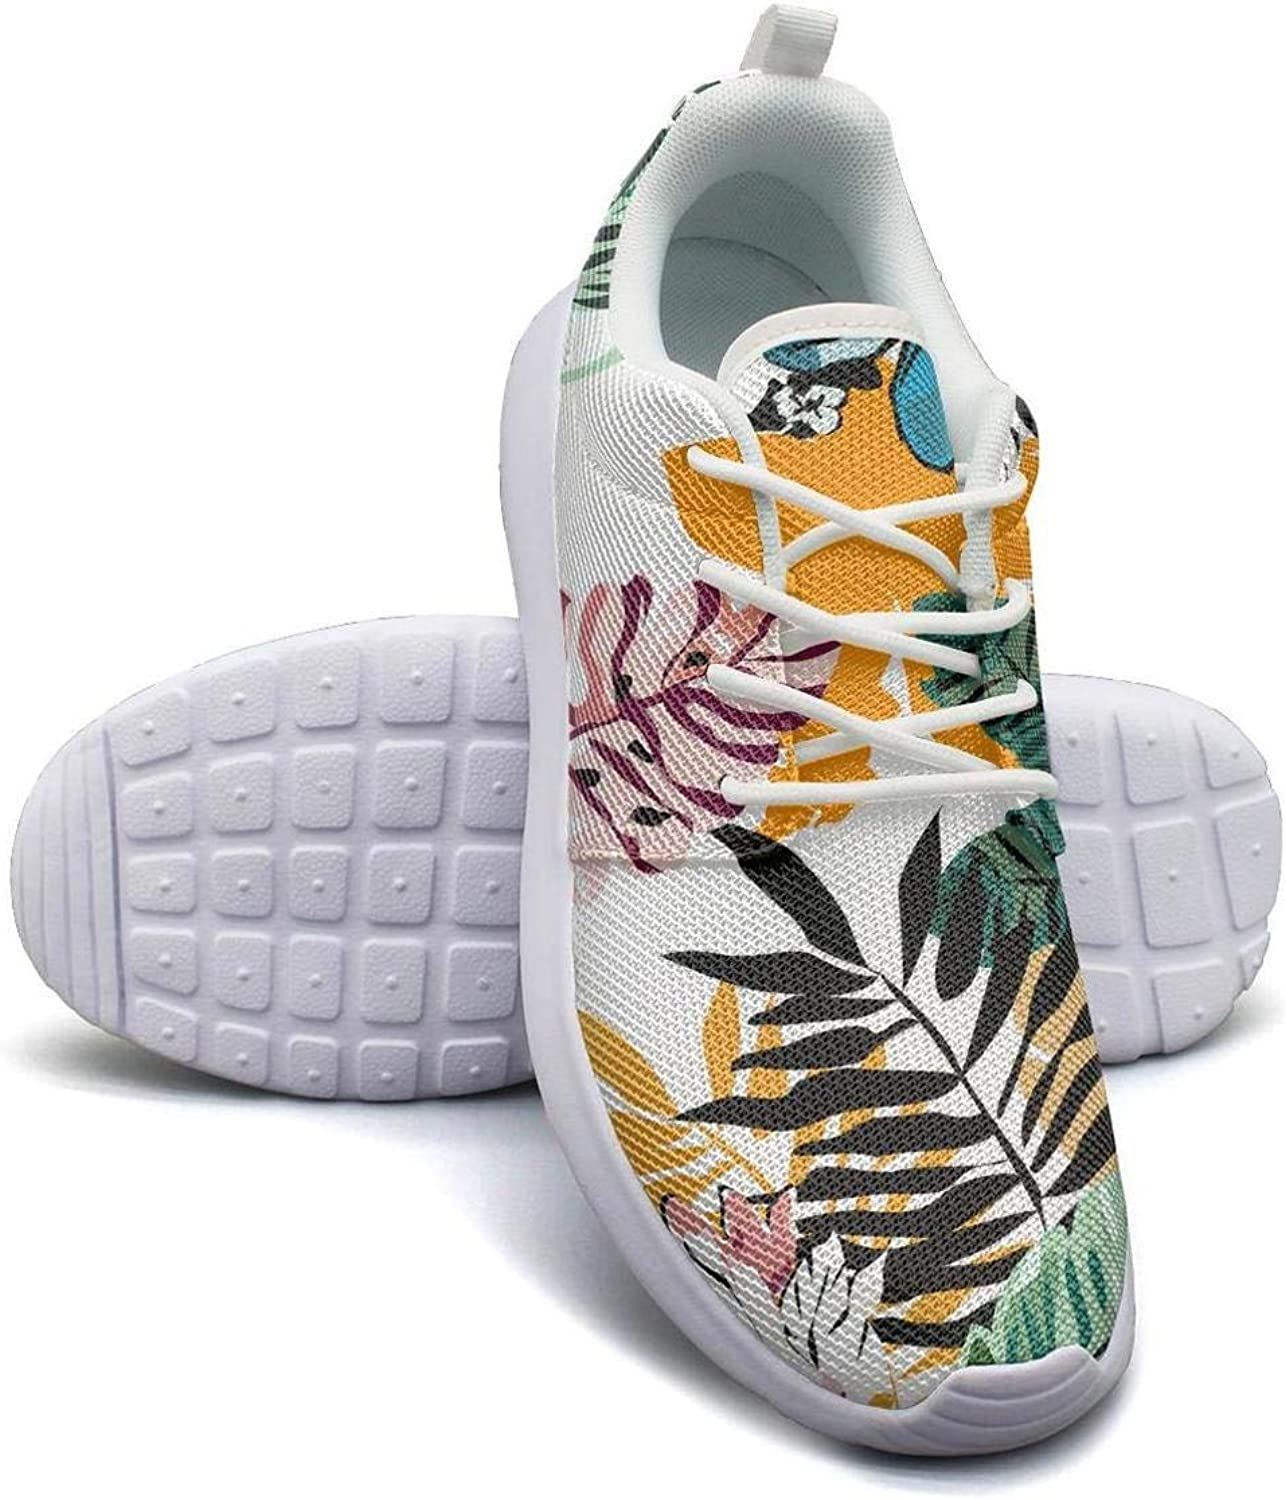 CHALi99 Fashion Woman Lightweight Mesh shoes Wild Summer Tropical Floral Hawaii Sneakers Sport Quick Dry